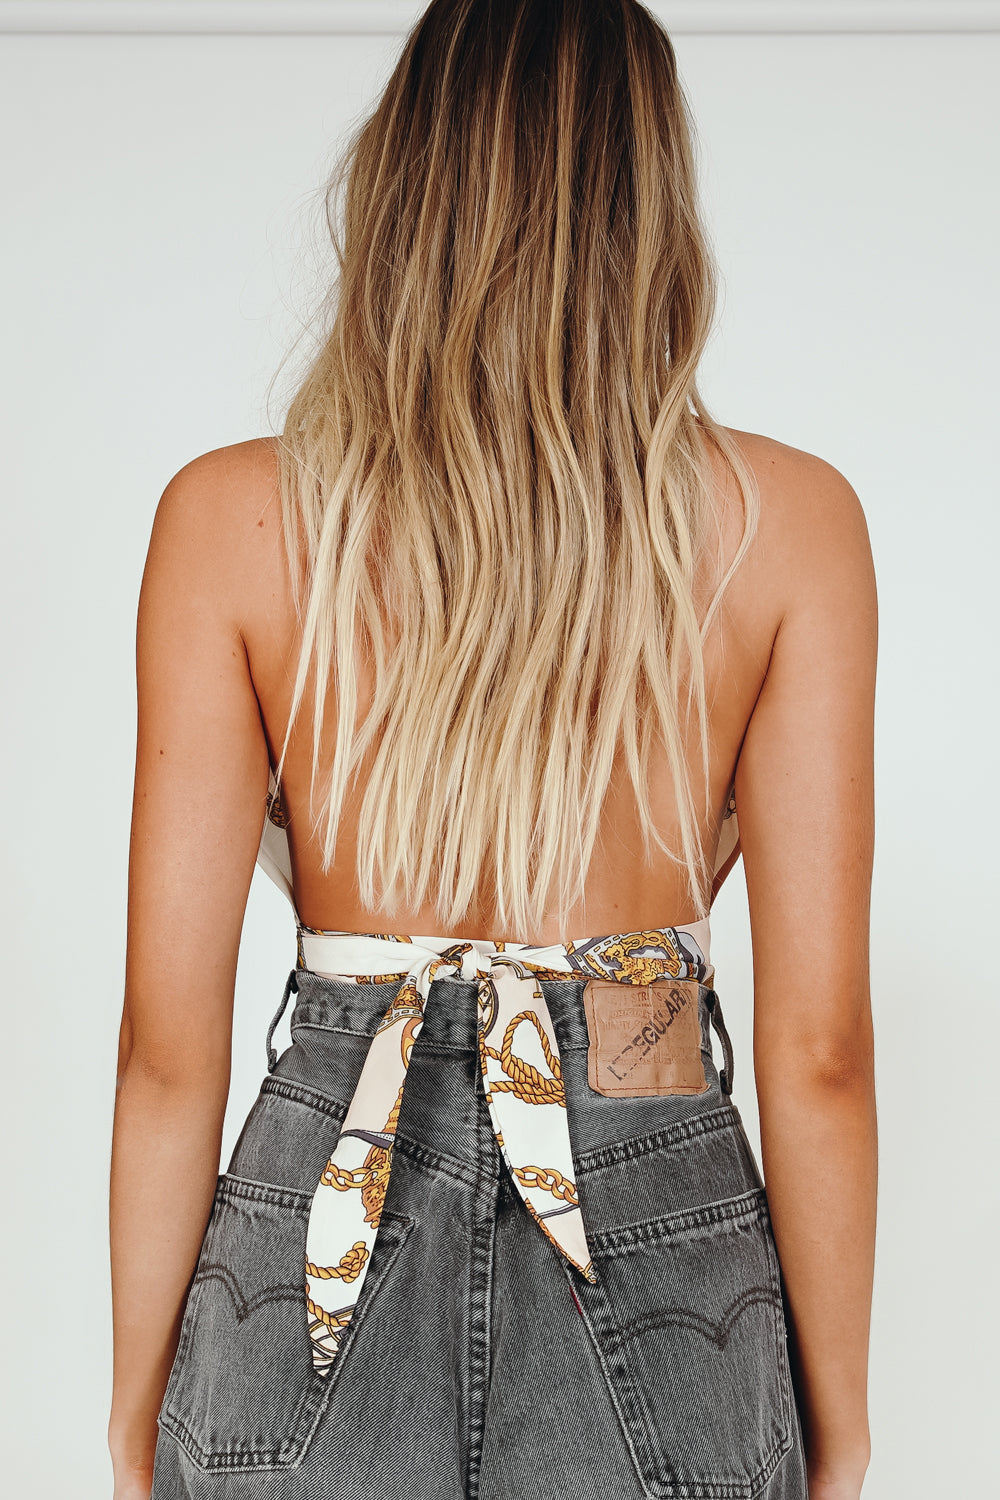 French Riviera Tie Back Halter Top // Print